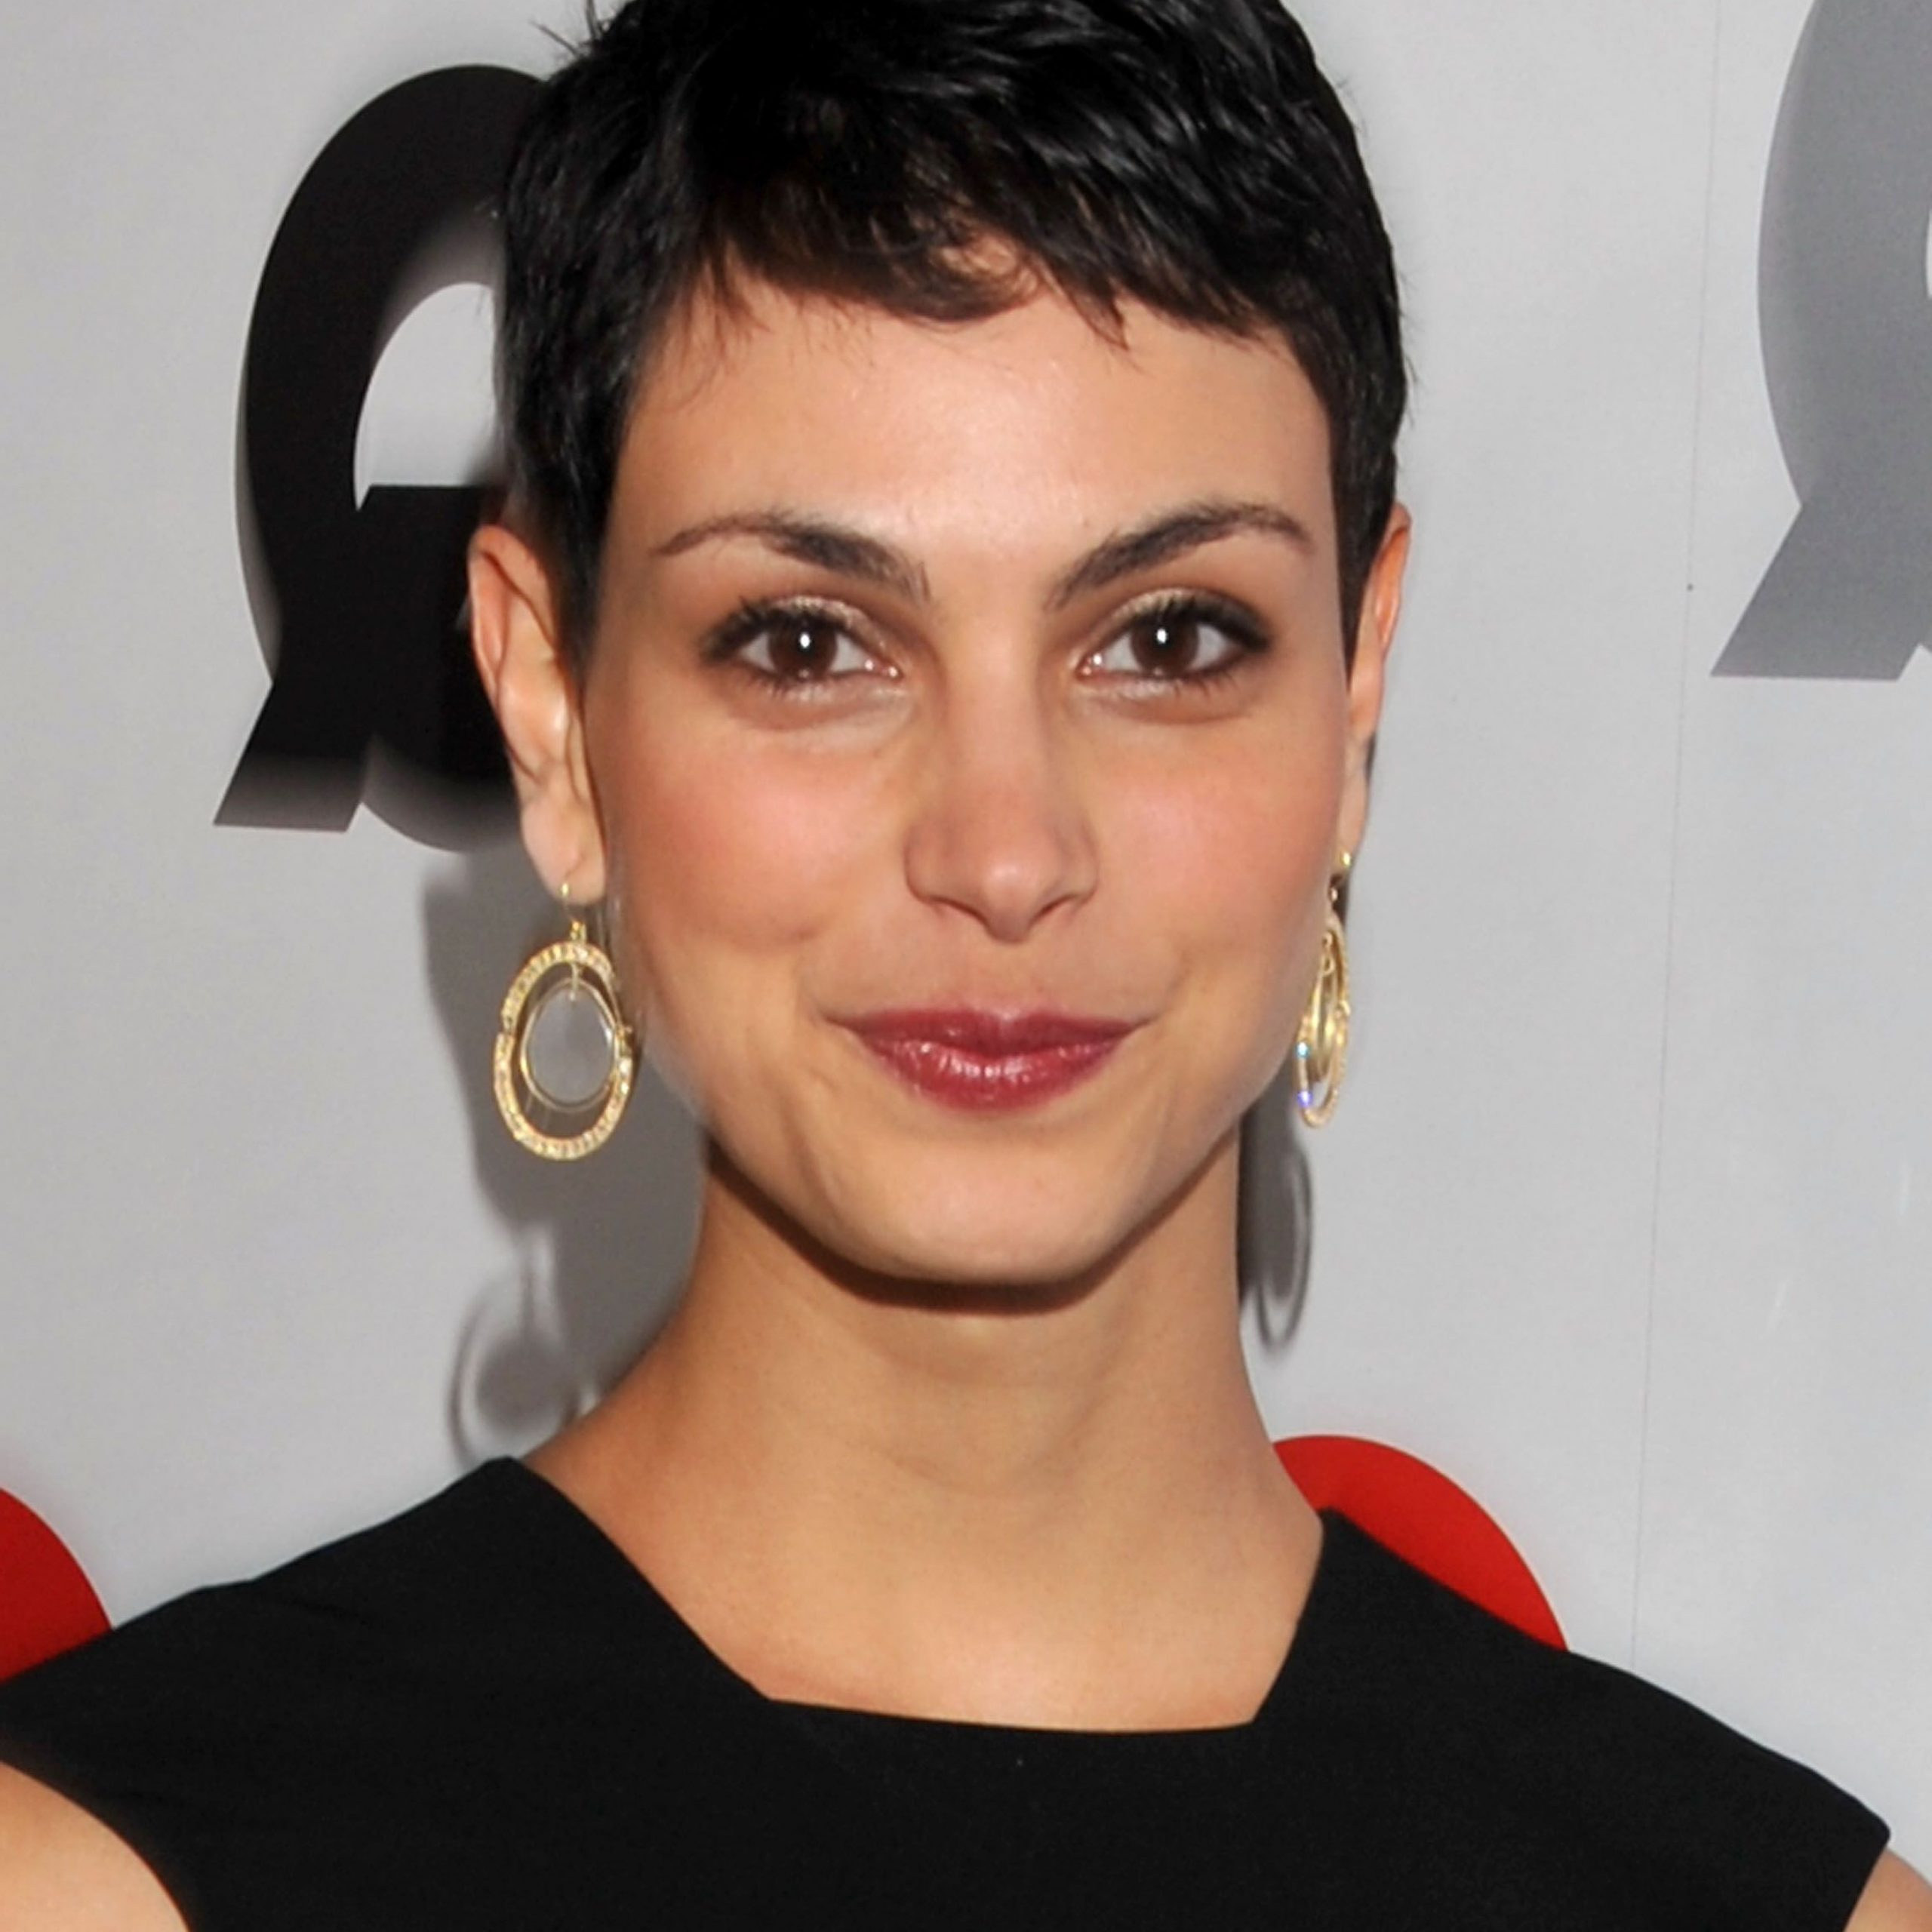 Morena Baccarin, Short Hair Styles, Hair Intended For Current Morena Pixie Haircuts With Bangs (View 9 of 20)